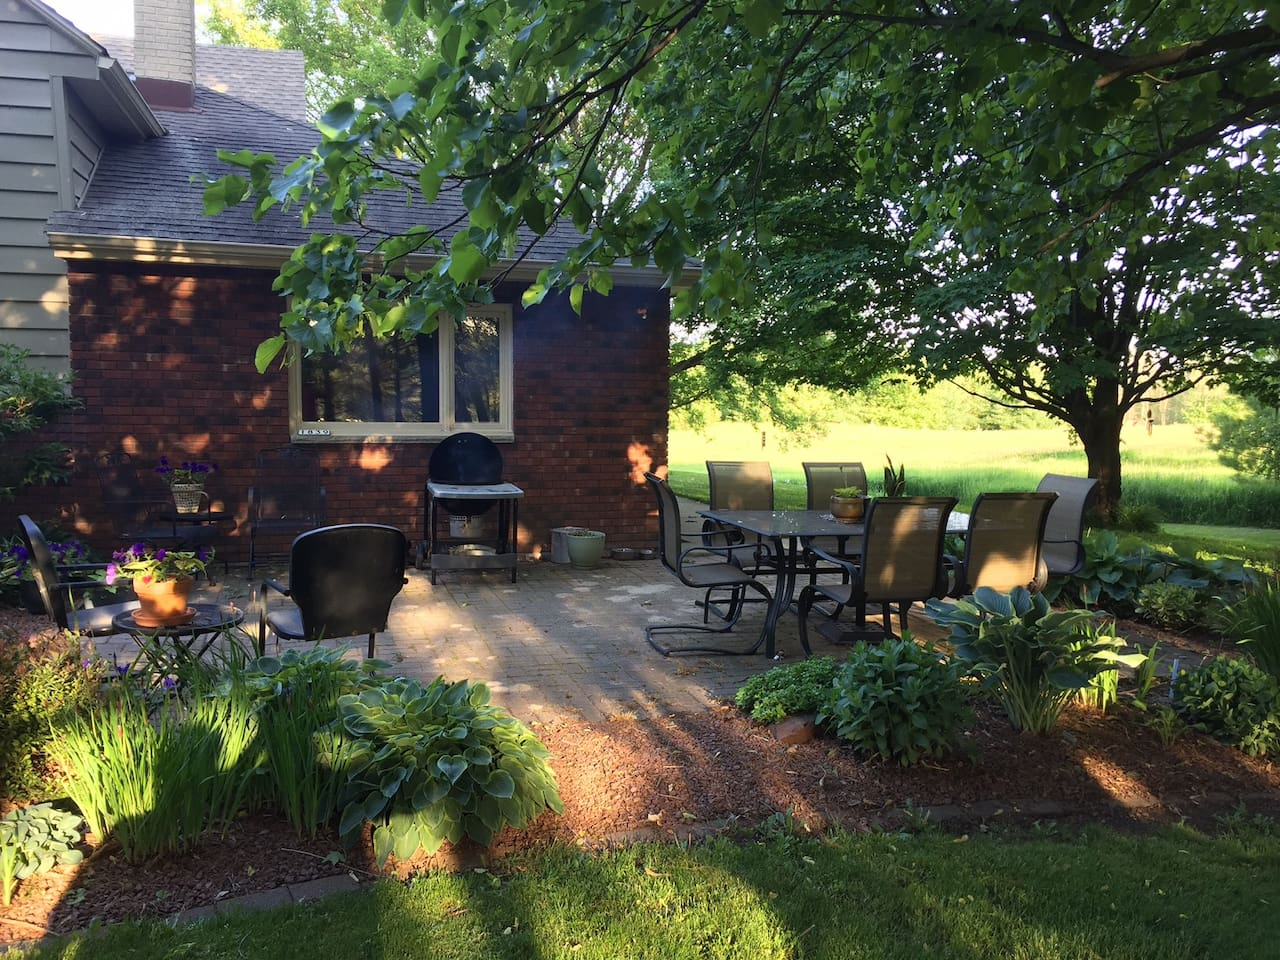 Beautiful, relaxing brick patio with dining and sitting areas